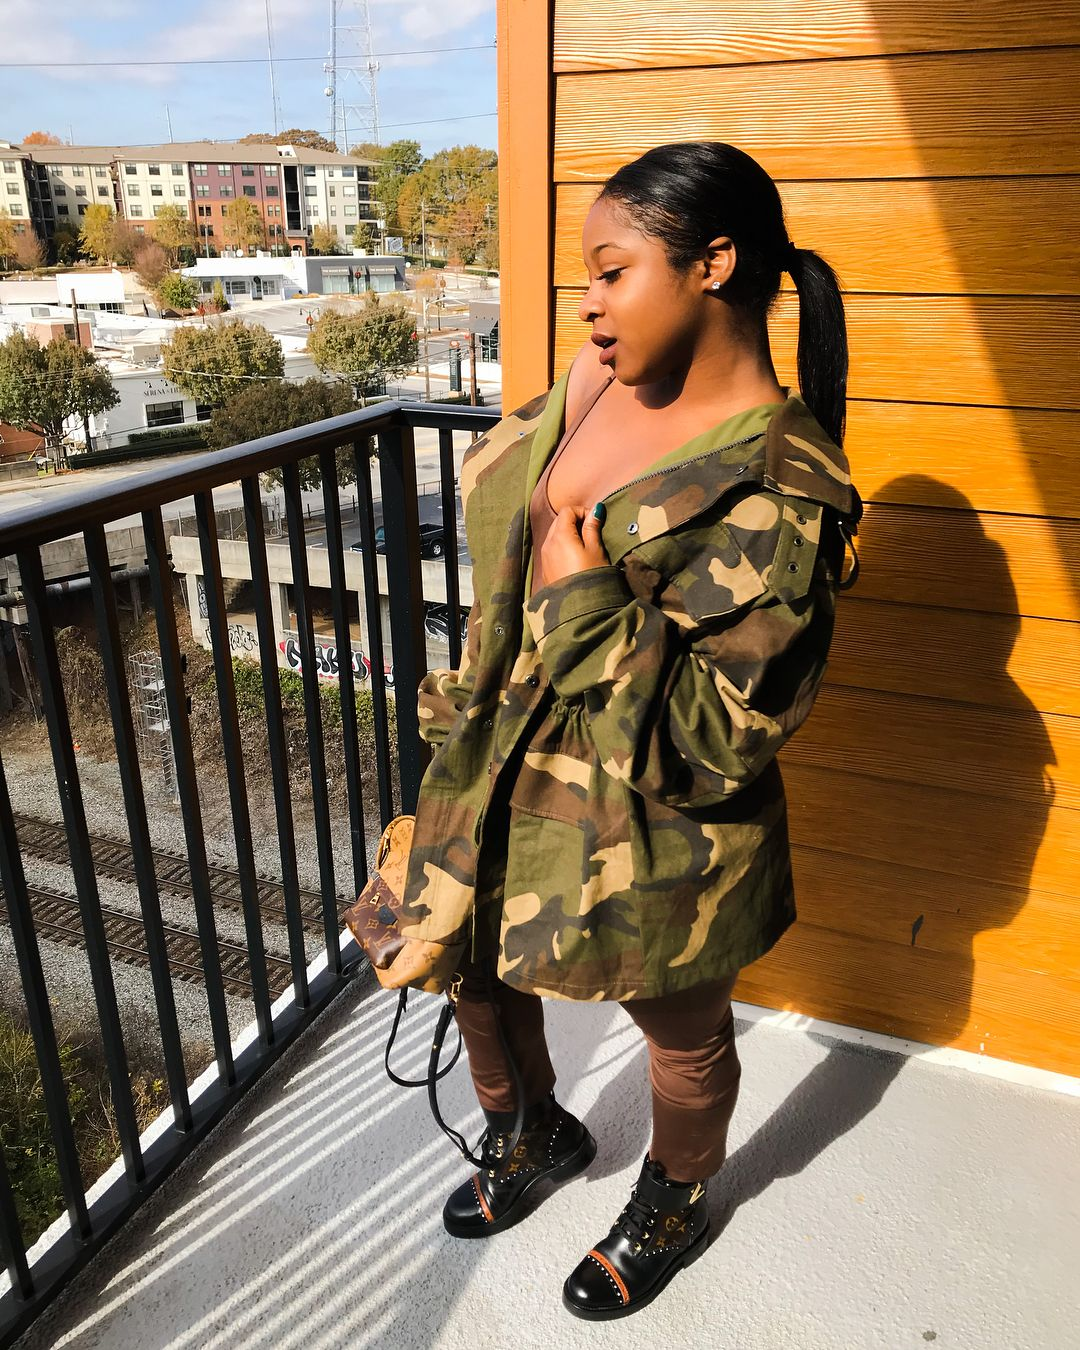 Reginae Carter (With images) | Cute outfits, Girl, Black girls